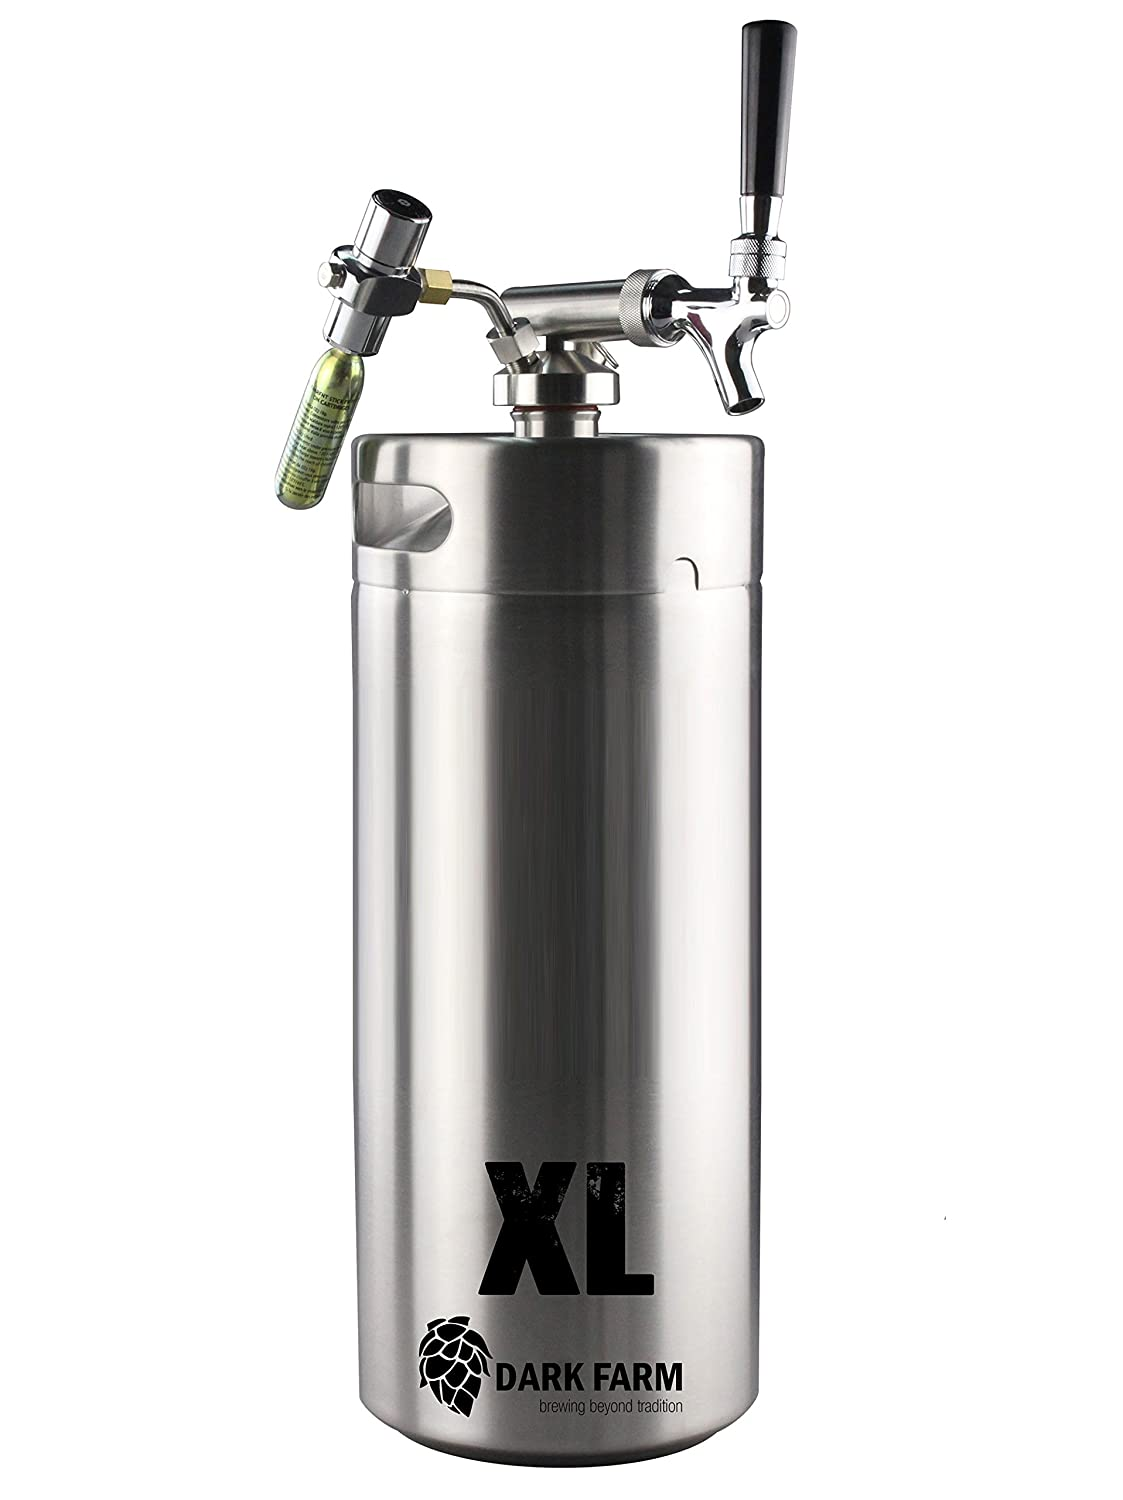 Portable Home Brew Draft System 10L Mini Keg/Growler with CO2 Dispenser Dark Farm